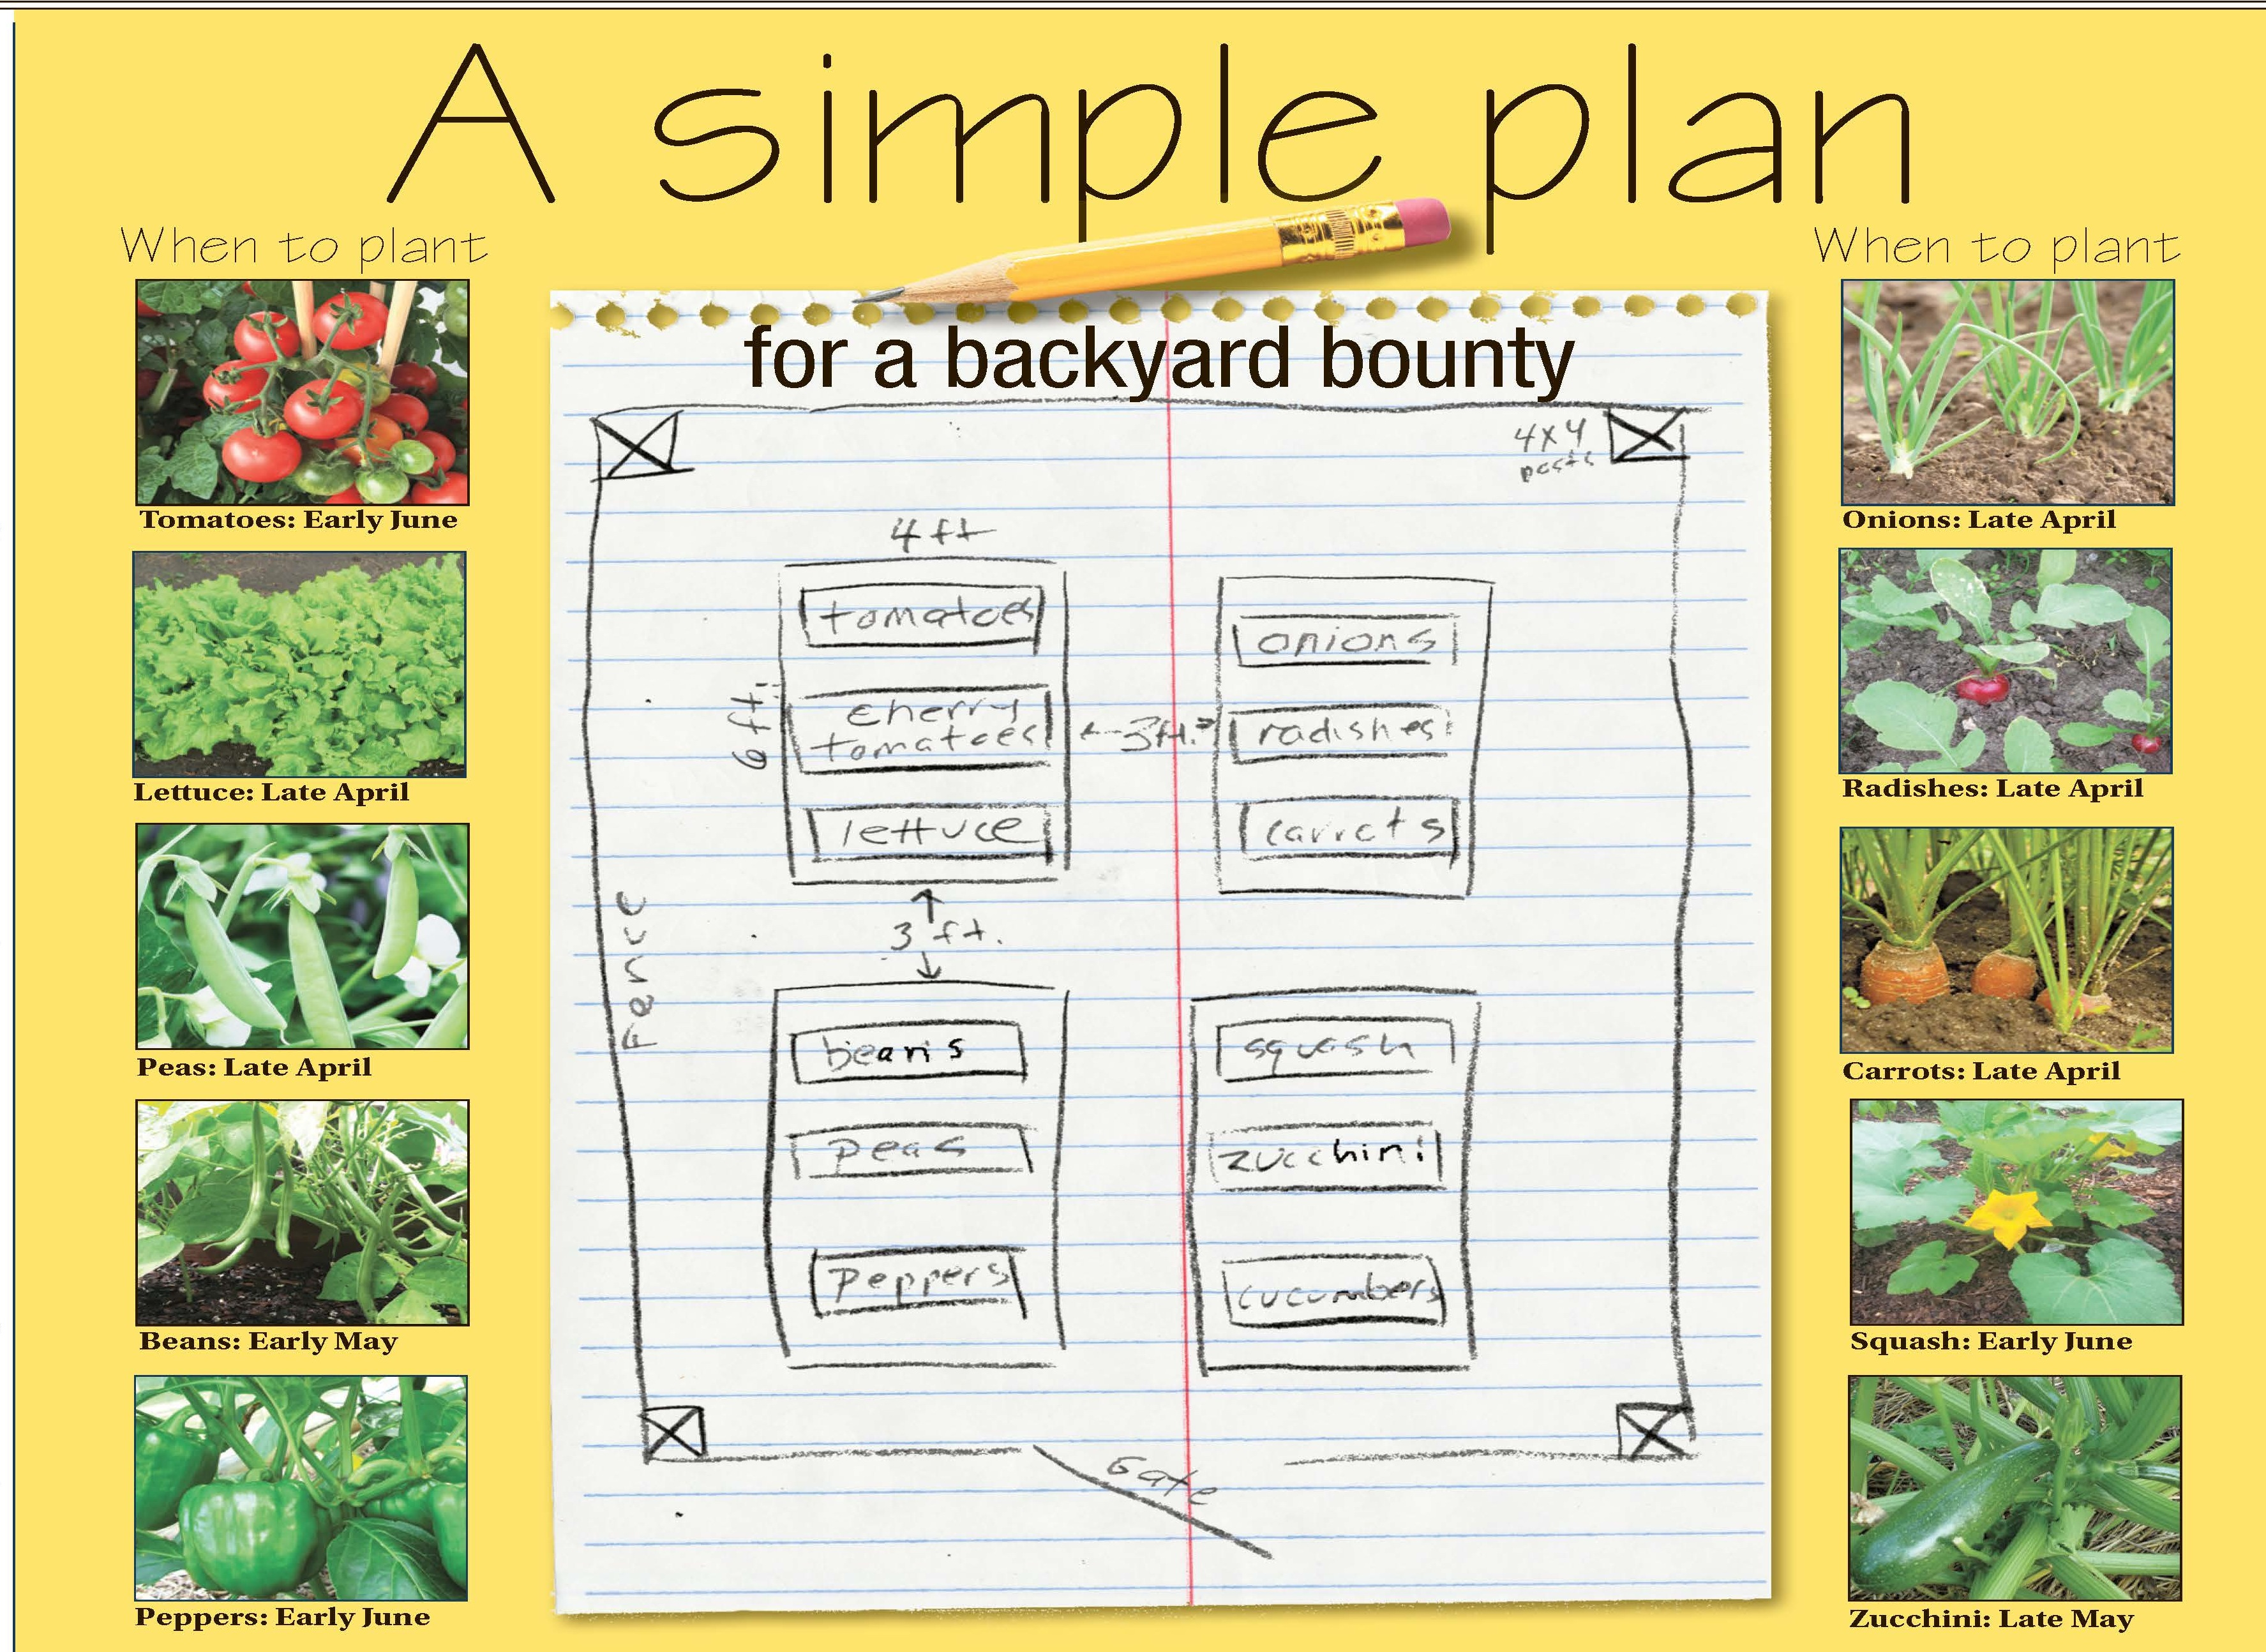 A simple plan for backyard bounty - The Blade